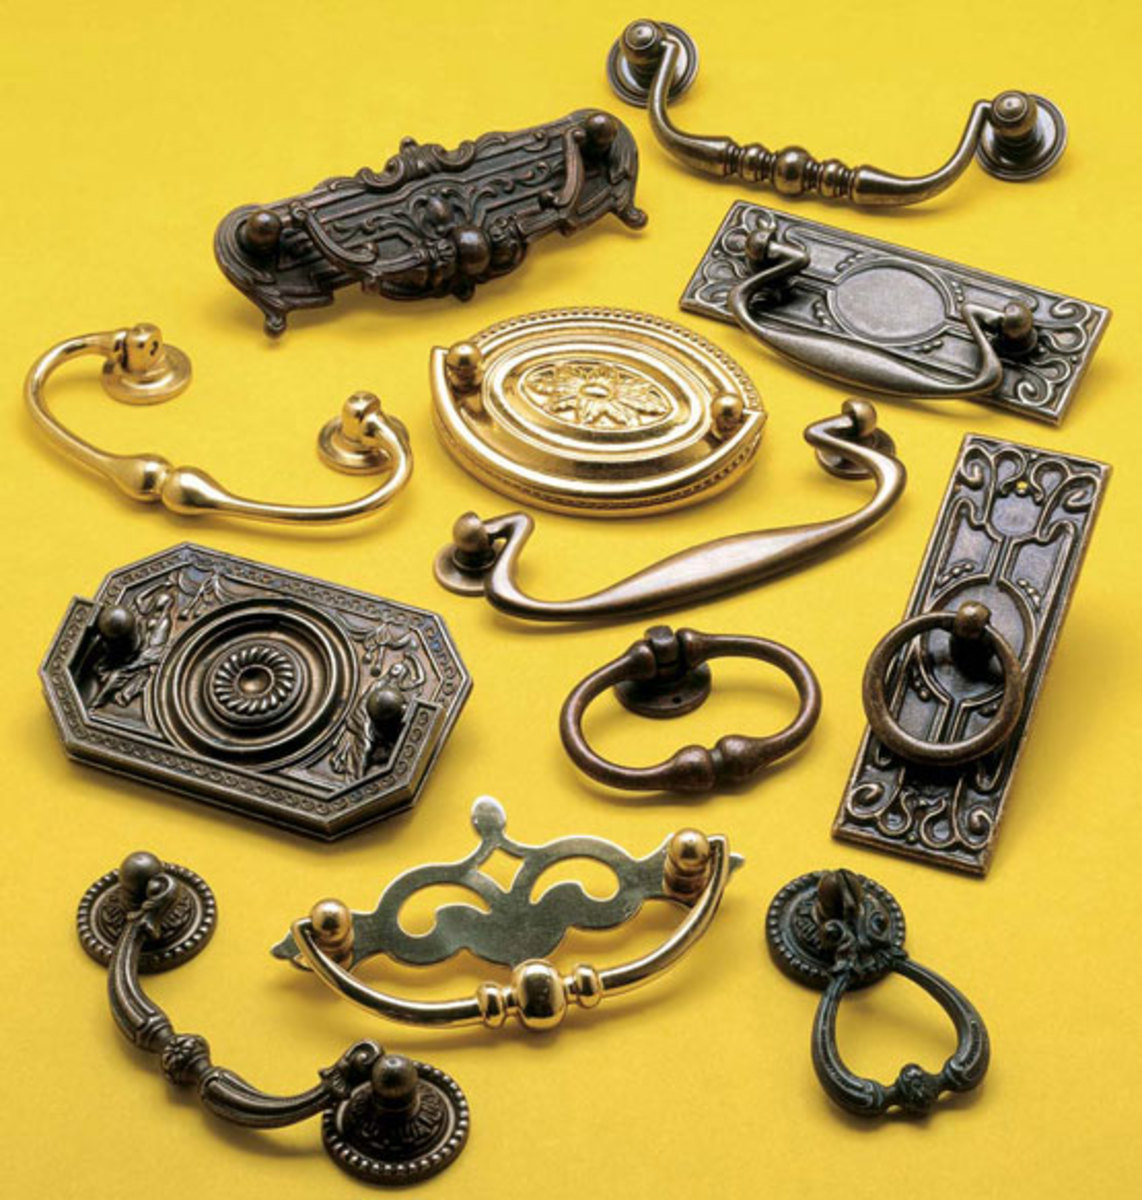 Hardware suitable for Romantic Revival homes, from Omnia Industries.